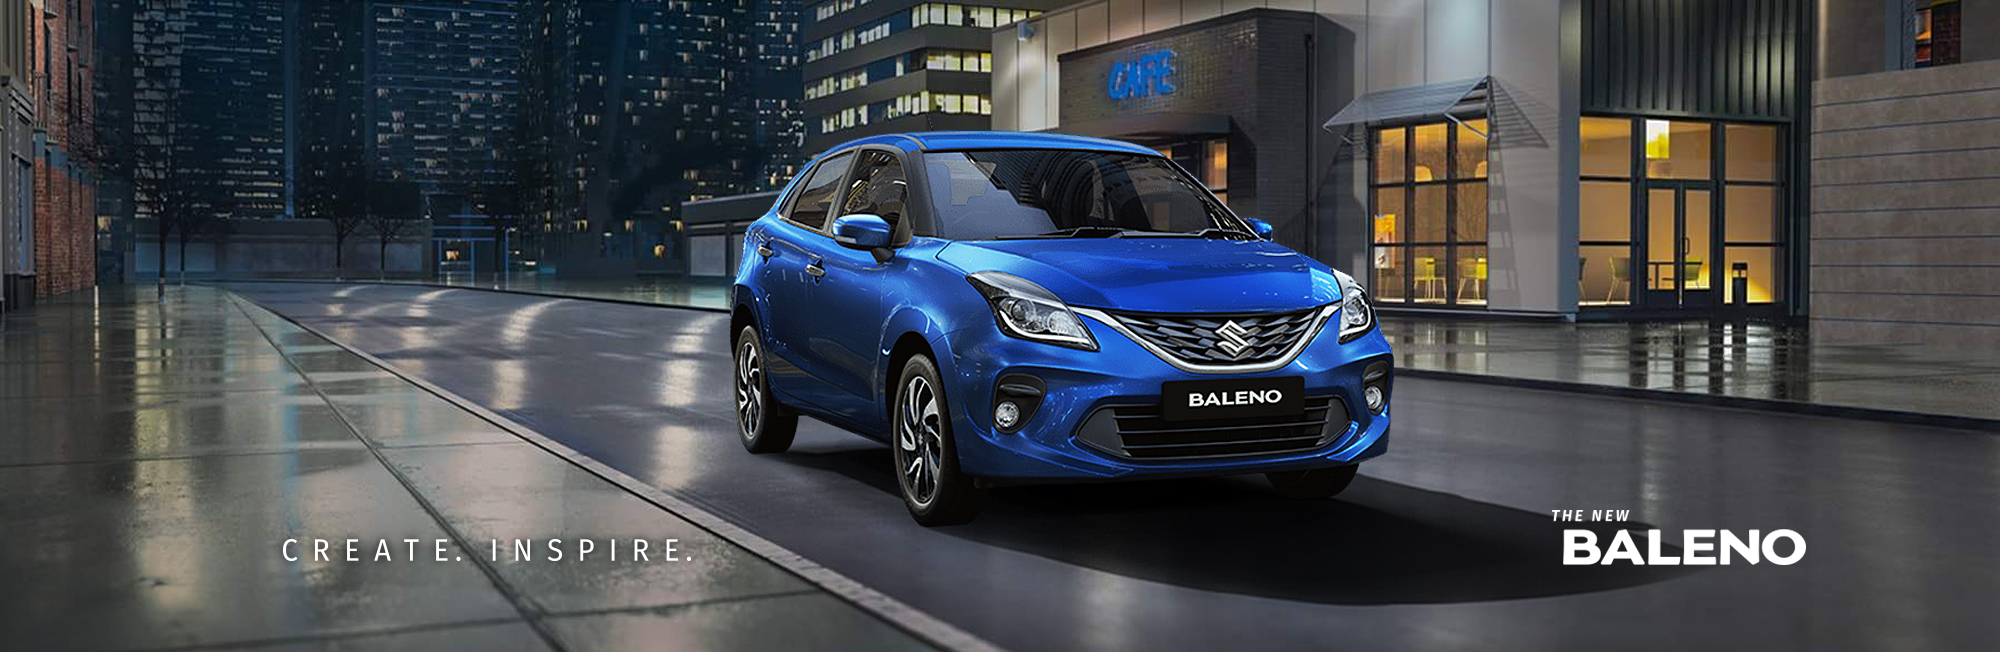 Baleno - Made of Mettle